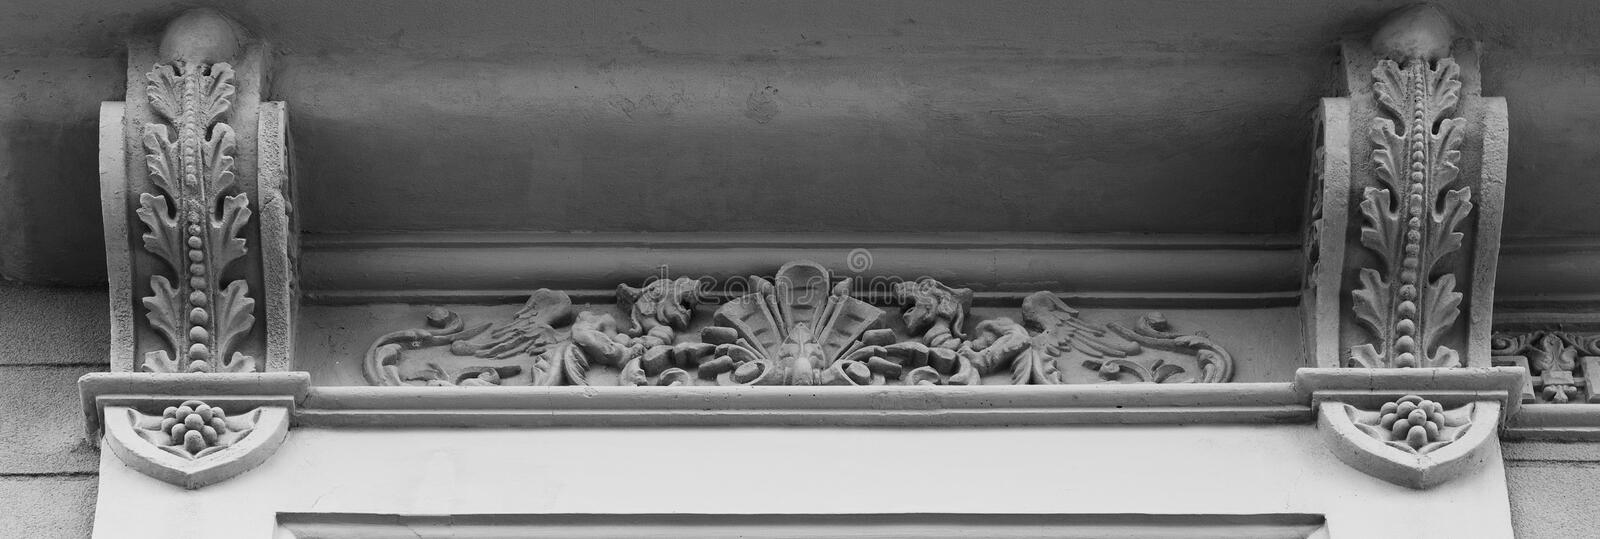 Little dragons protecting the shield. Shot in black and white detail on the facade of this historic building representing some character, animal or flower. Set stock image